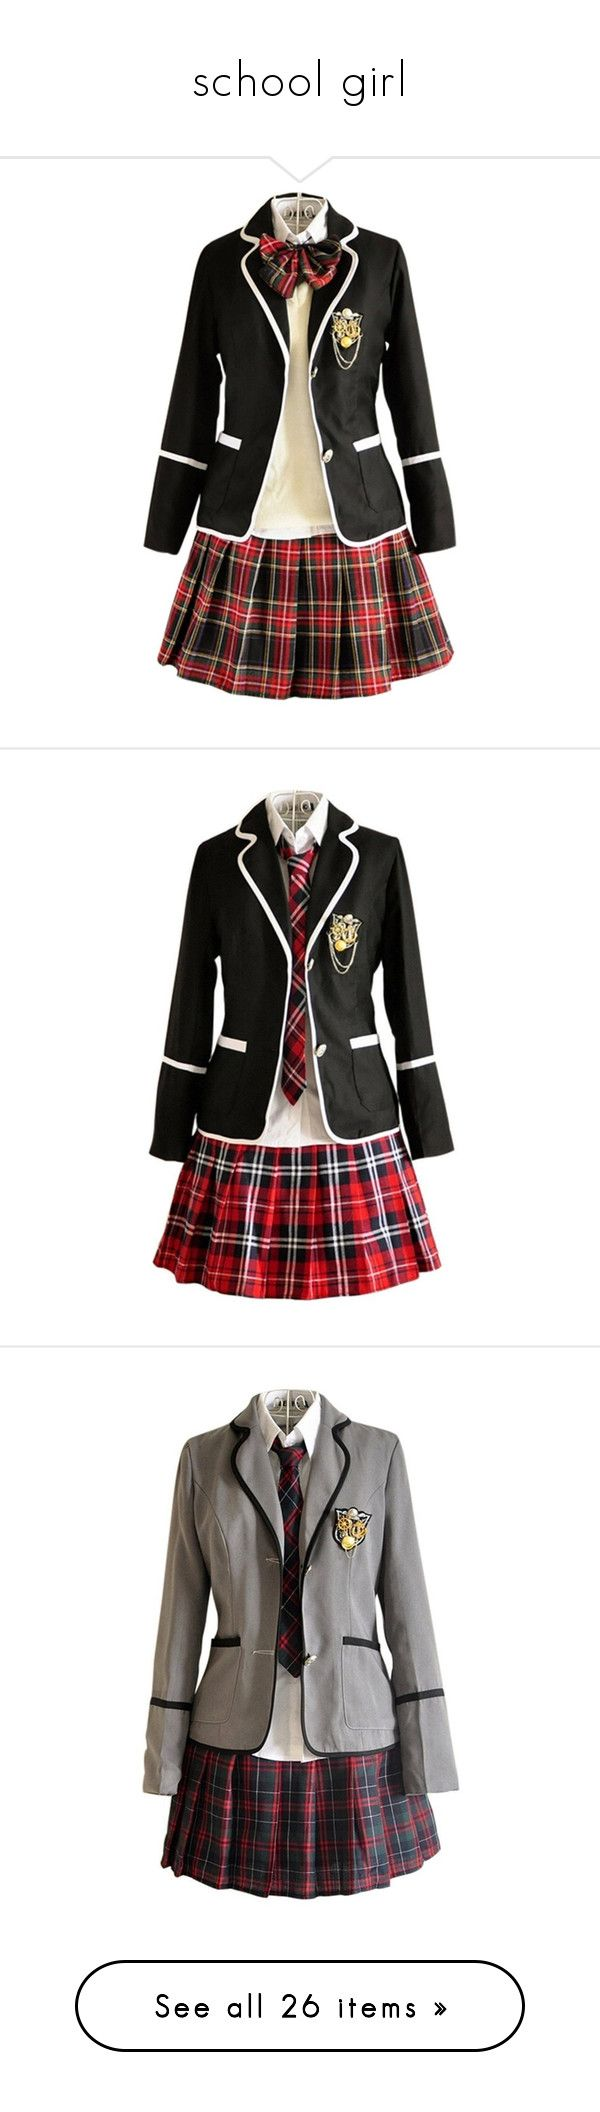 """""""school girl"""" by smile2528 ❤ liked on Polyvore featuring dresses, uniform, costumes, cosplay, outfits, outfit, role play costumes, womens cosplay costumes, ladies costumes and cosplay halloween costumes"""